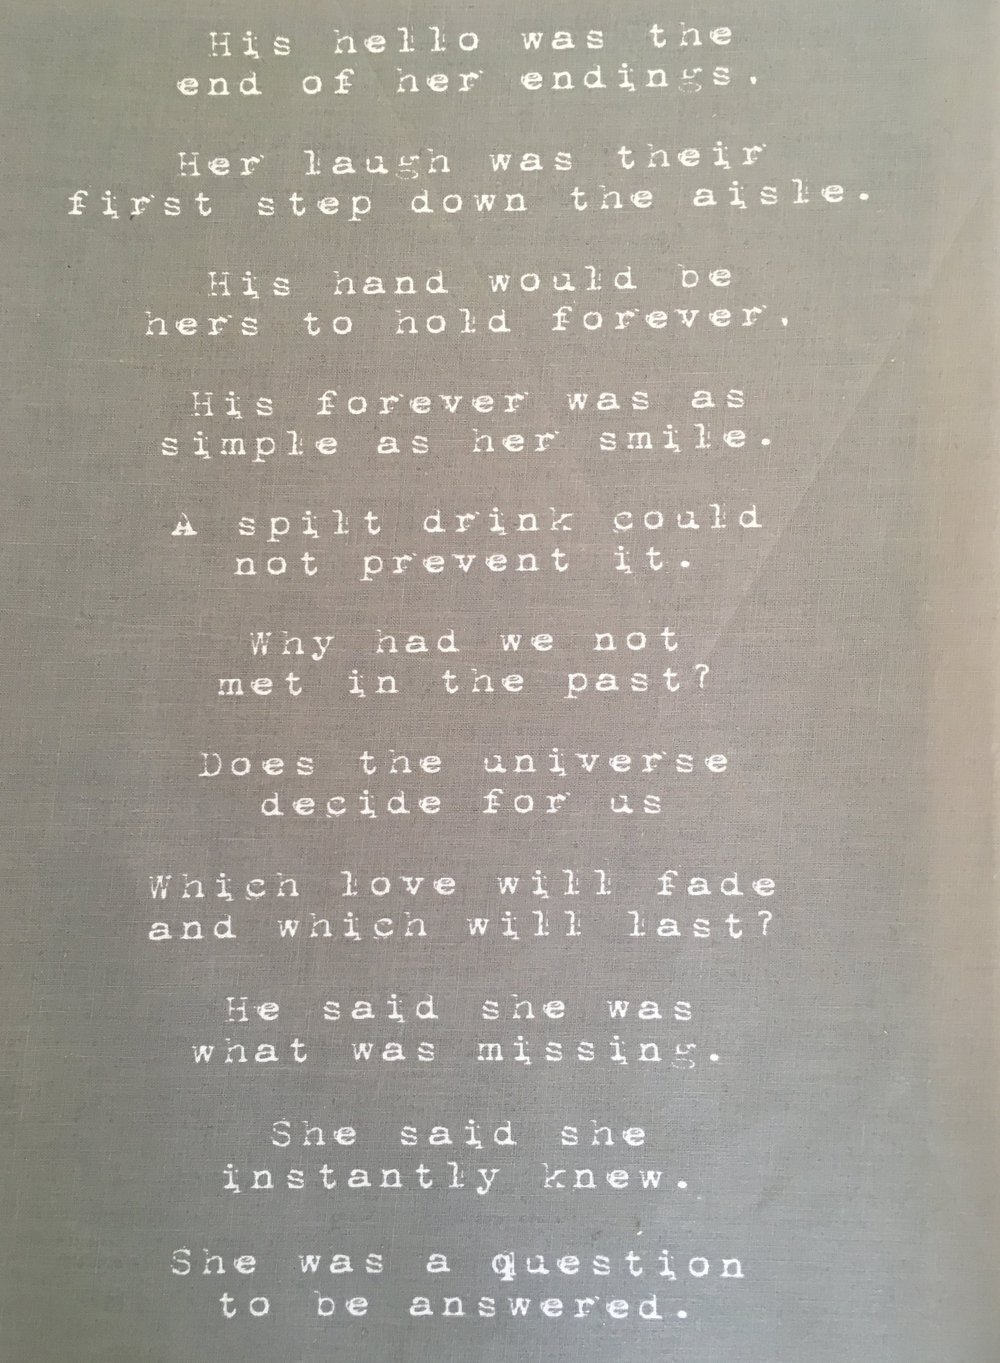 Wedding Poem - SATC